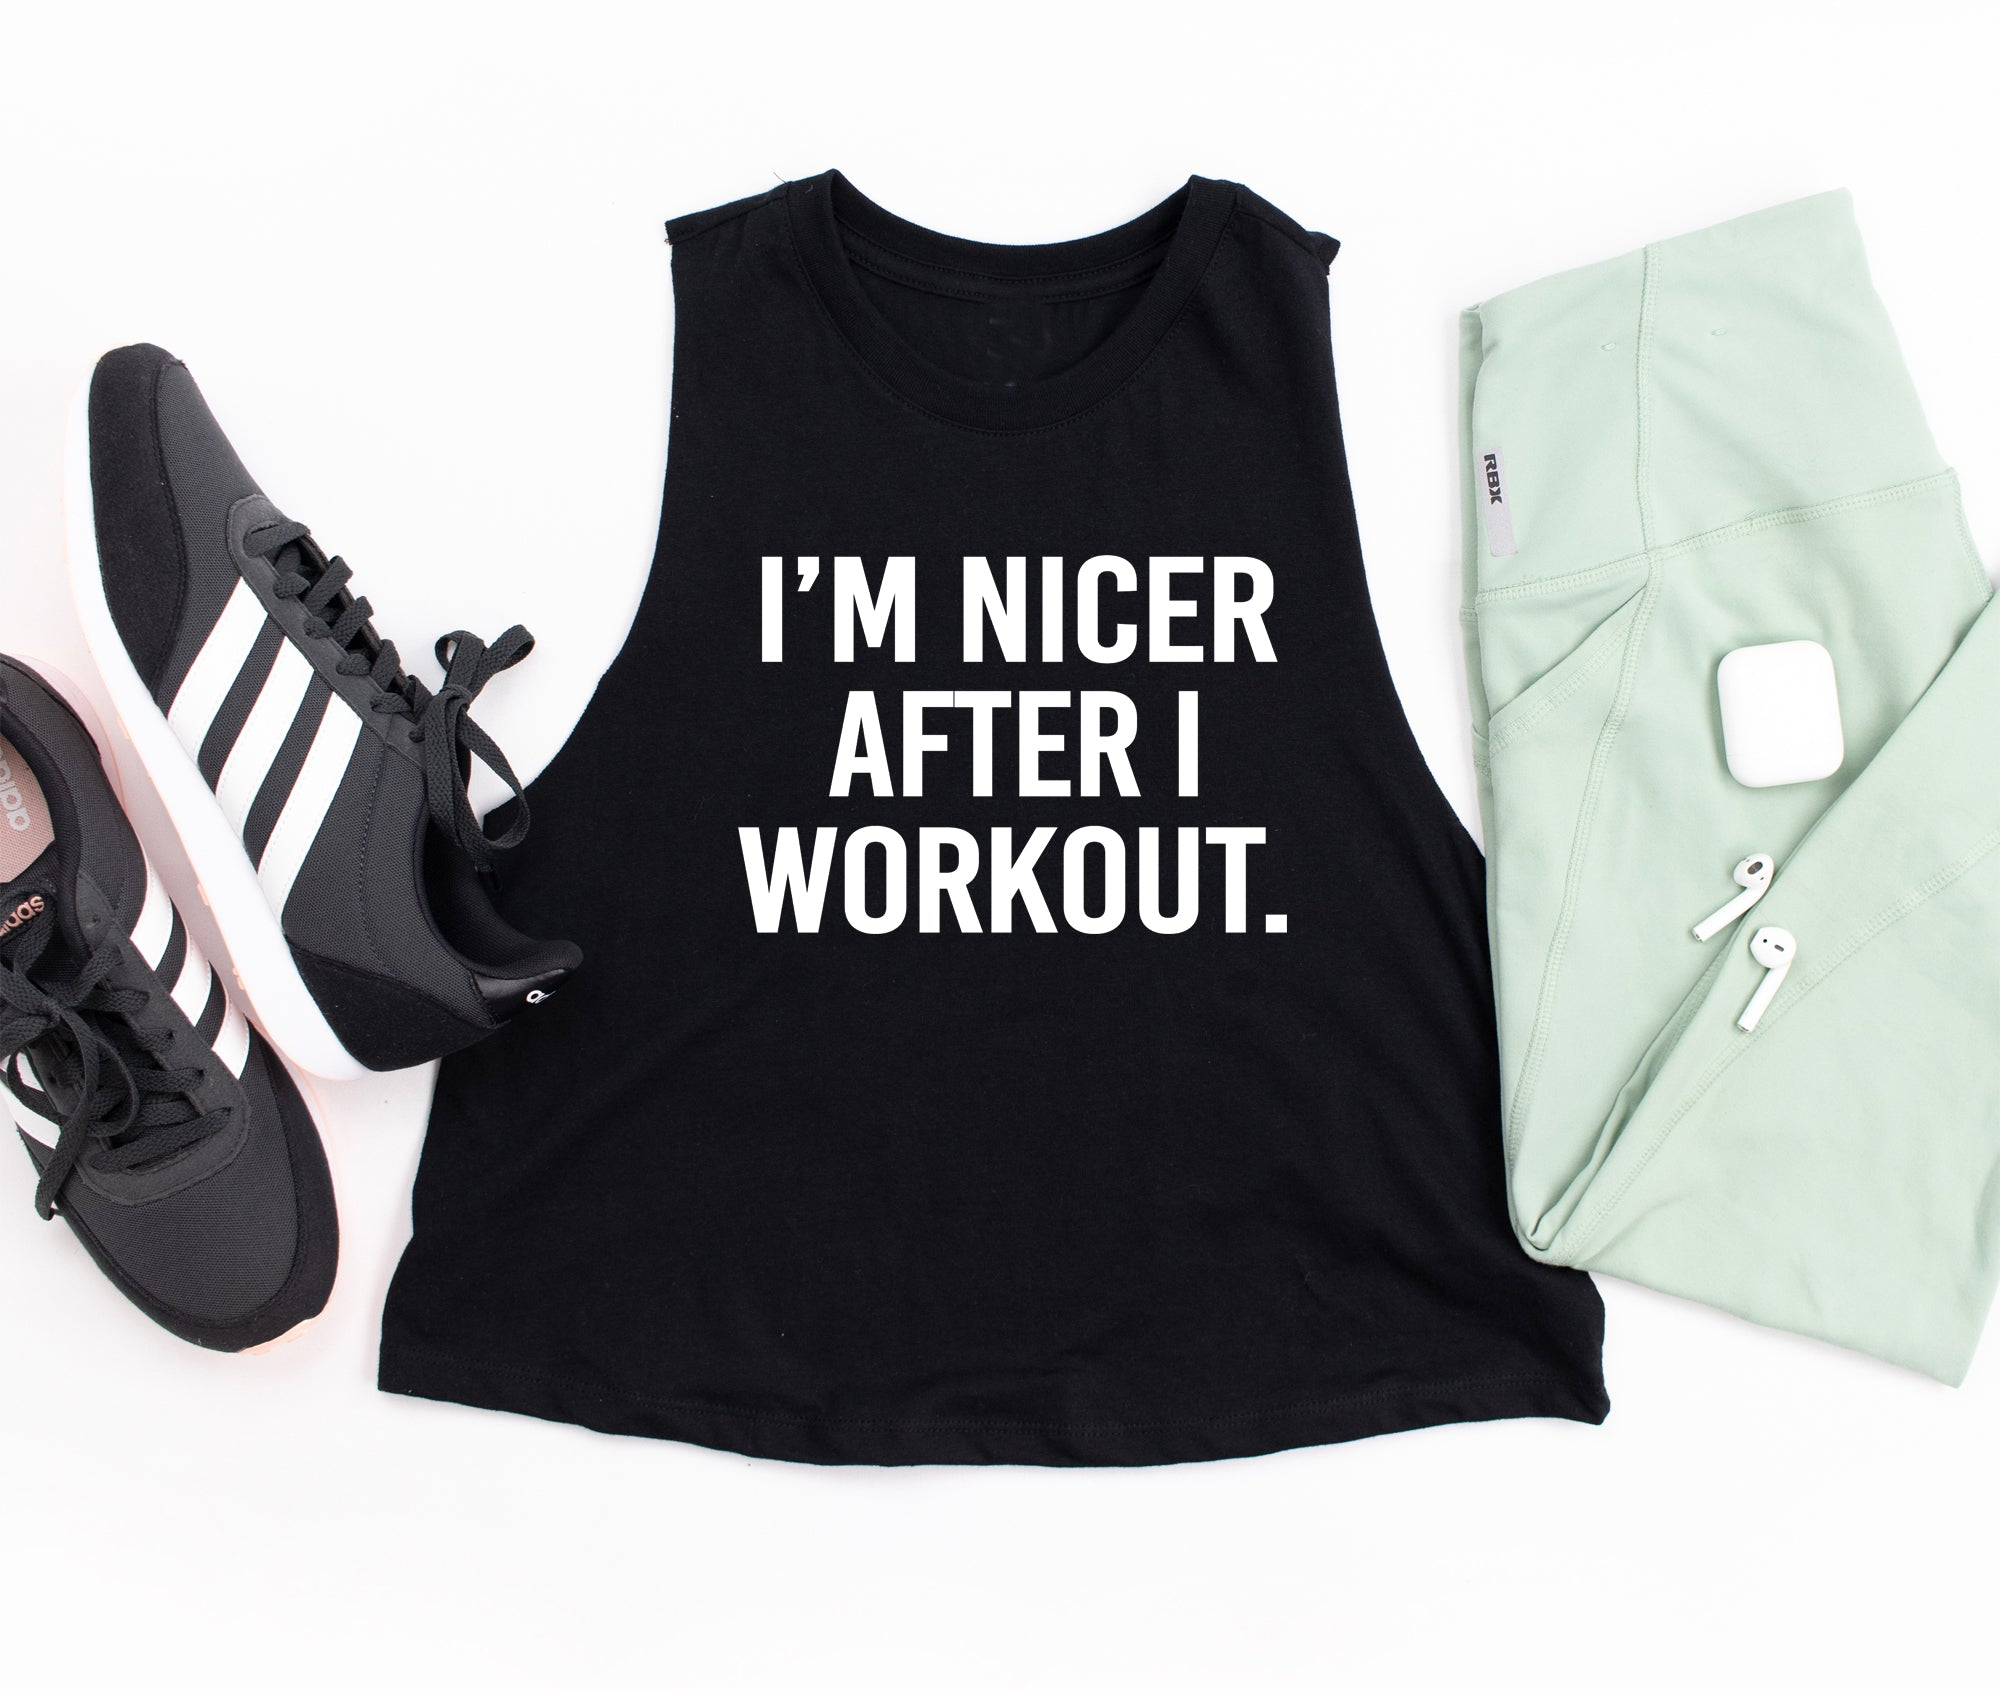 I M Nicer After I Workout Crop Tank Top Funny Workout Shirt Gym Shir Workitwear Clothing